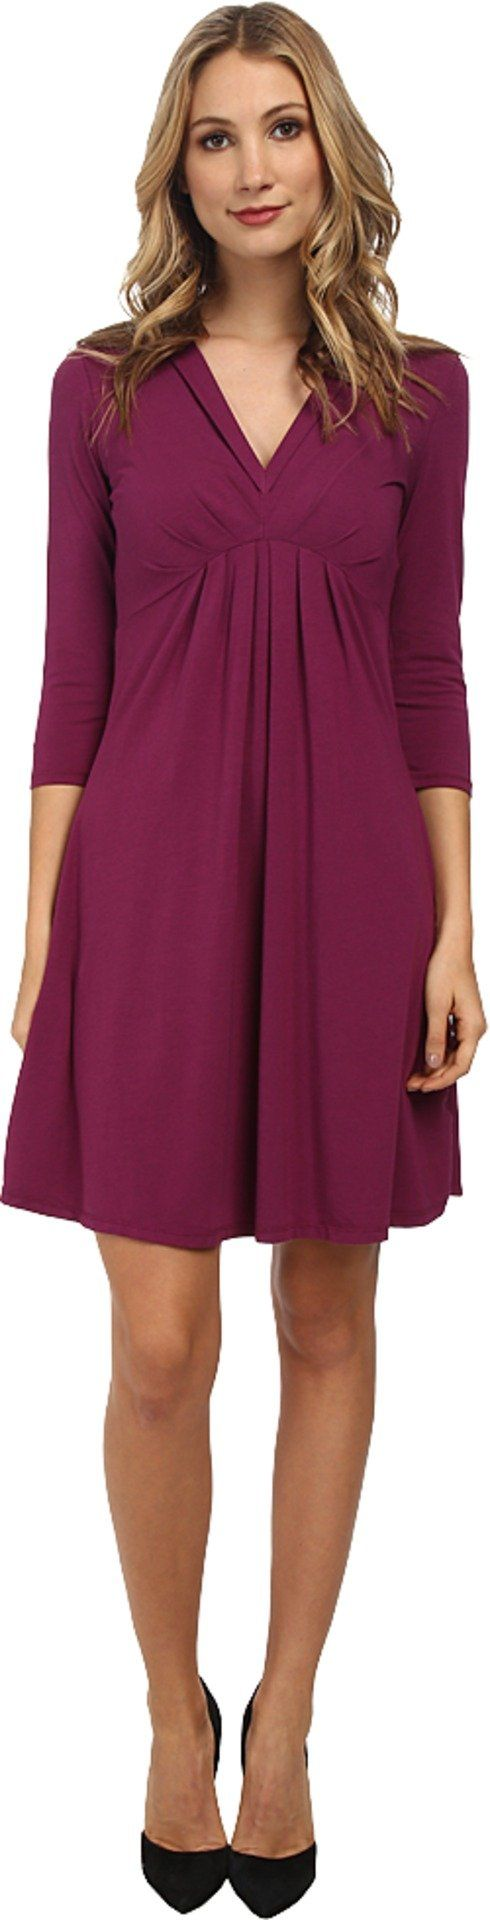 Mod-o-doc Women's Pleated Empire Waist Dress Garland